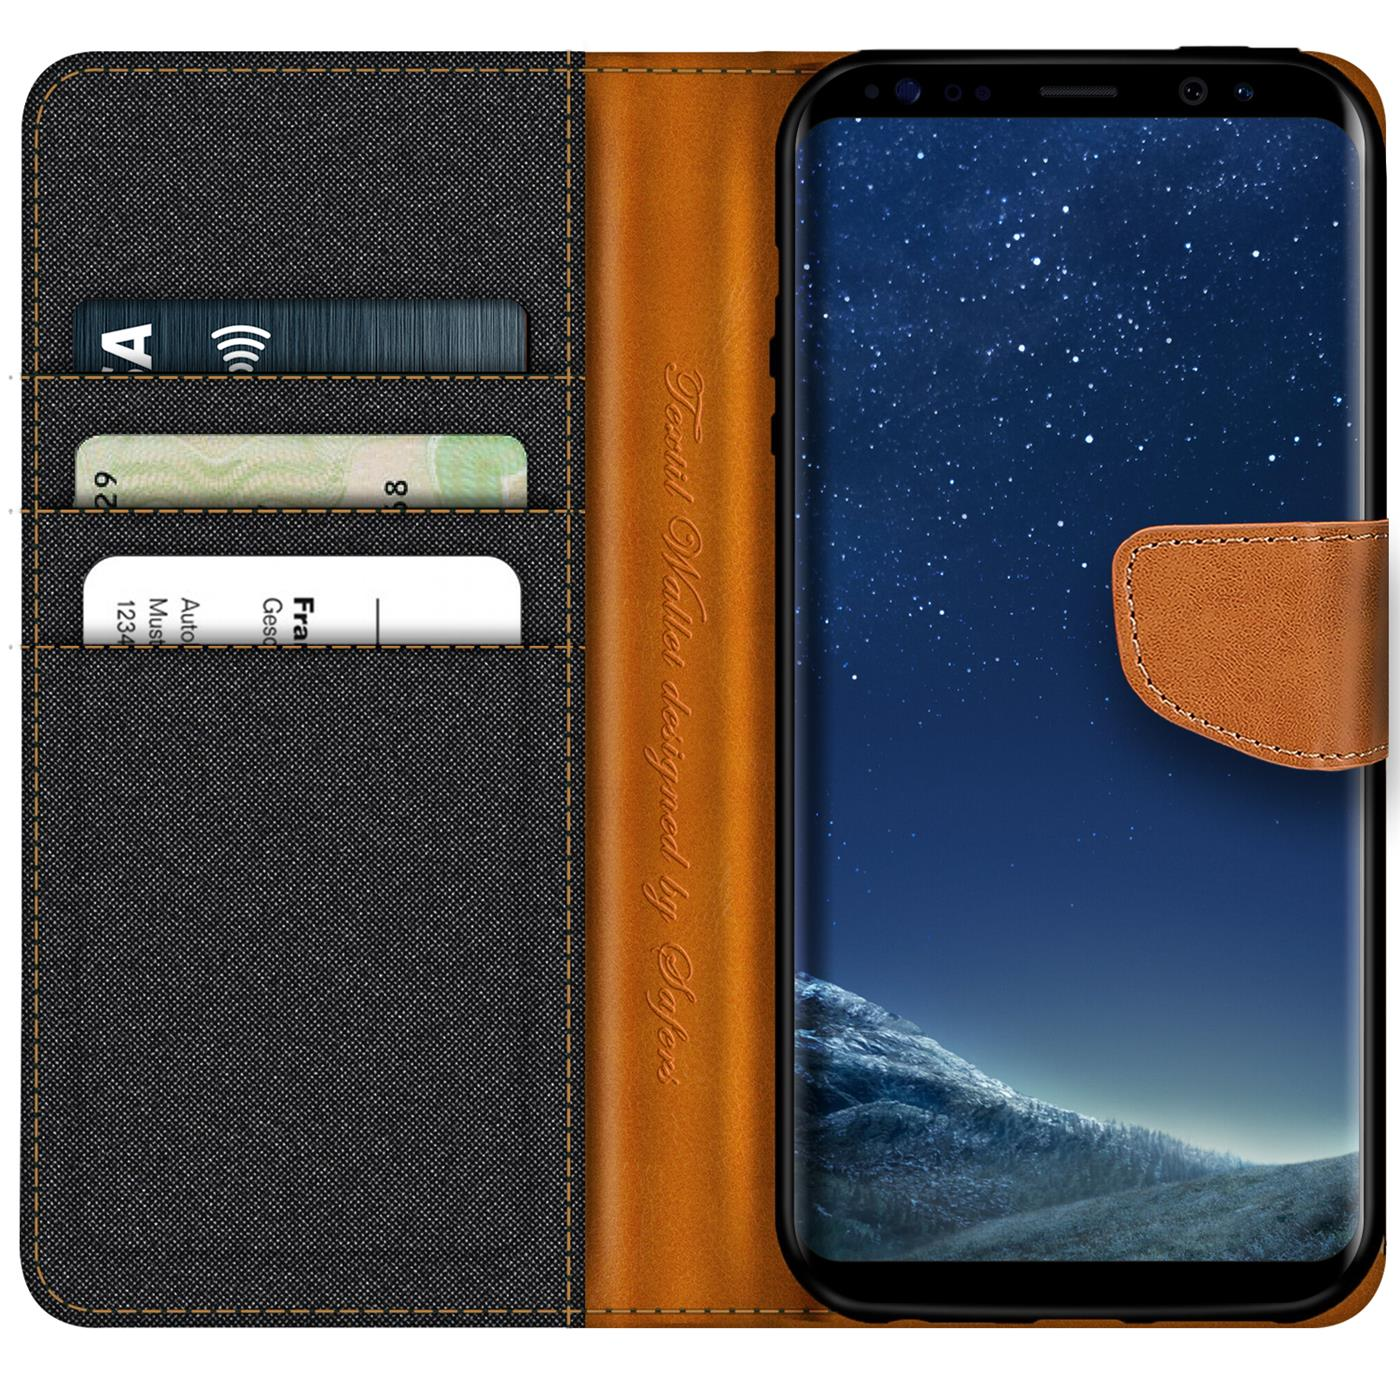 Samsung-Galaxy-S8-Plus-Phone-PU-Leather-Magnetic-Flip-Case-Wallet-Denim-Cover thumbnail 7